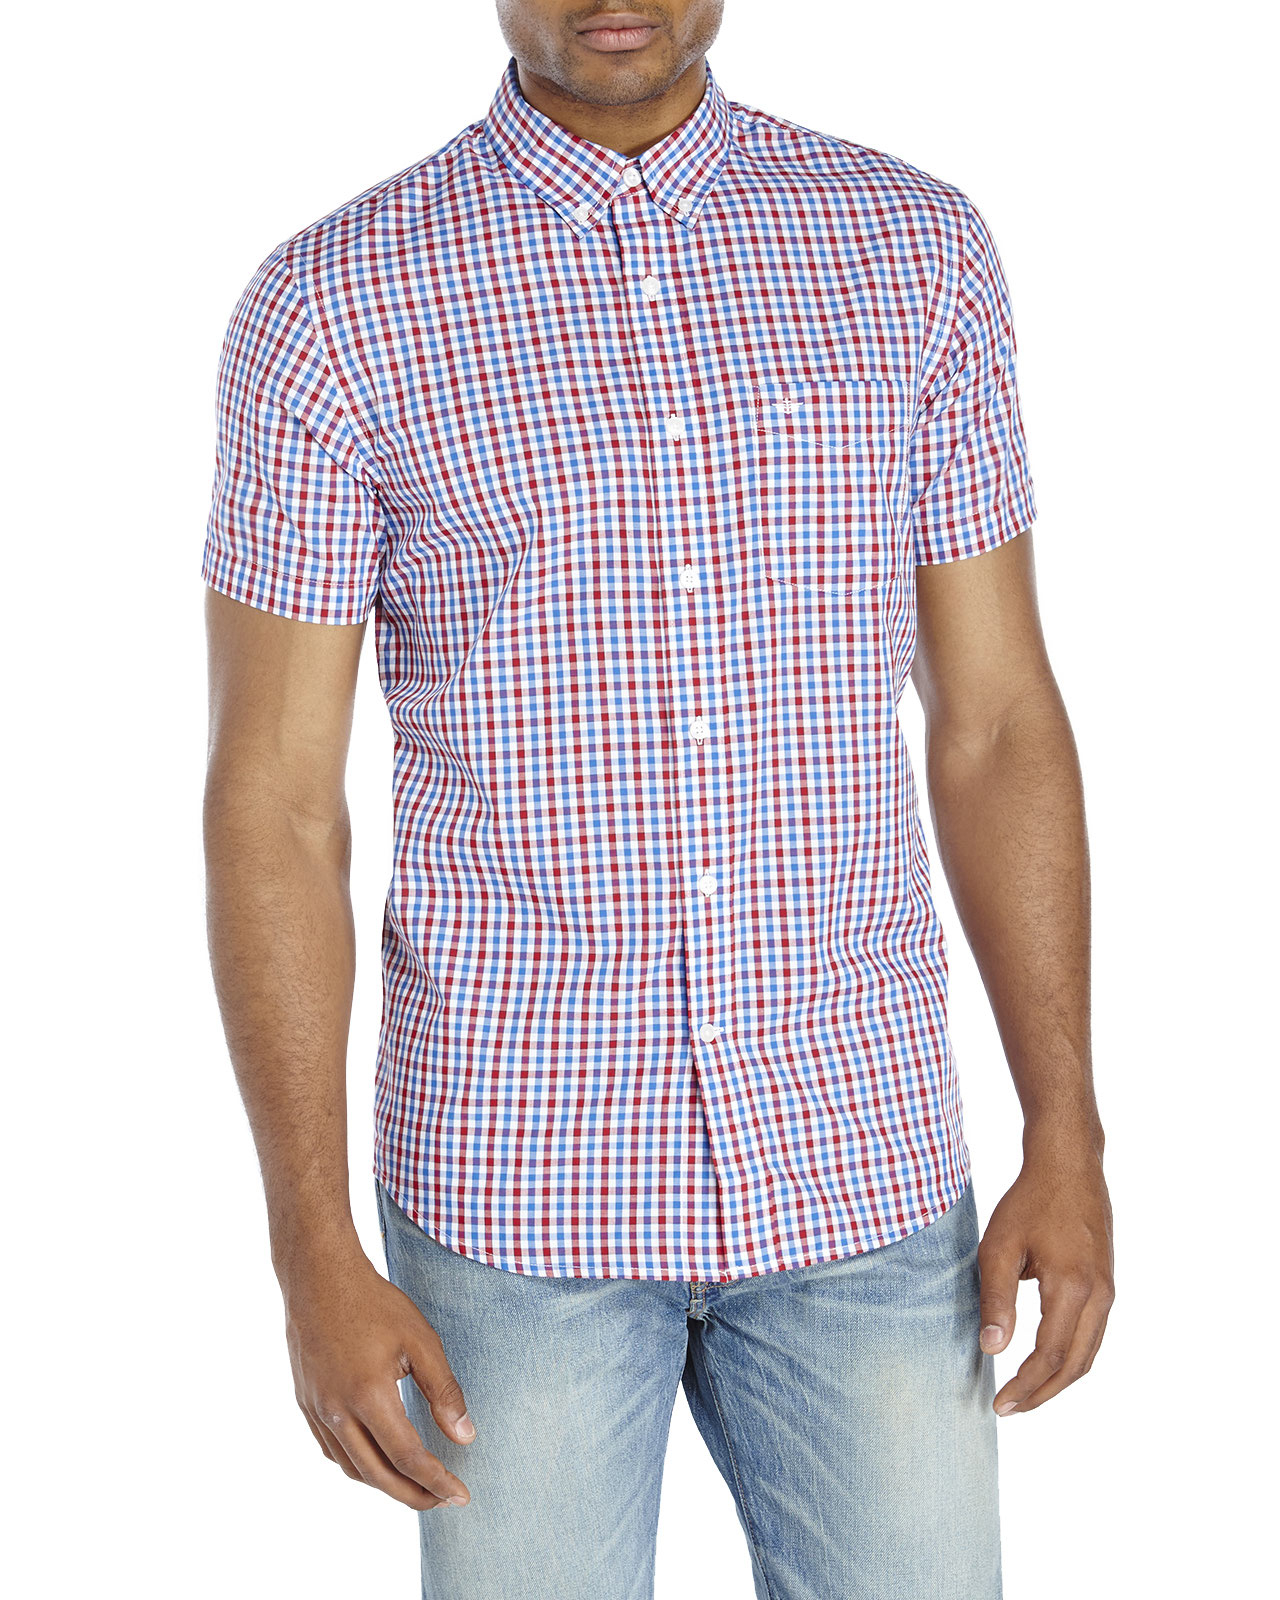 Lyst dockers blue red gingham button down shirt in for Blue gingham button down shirt